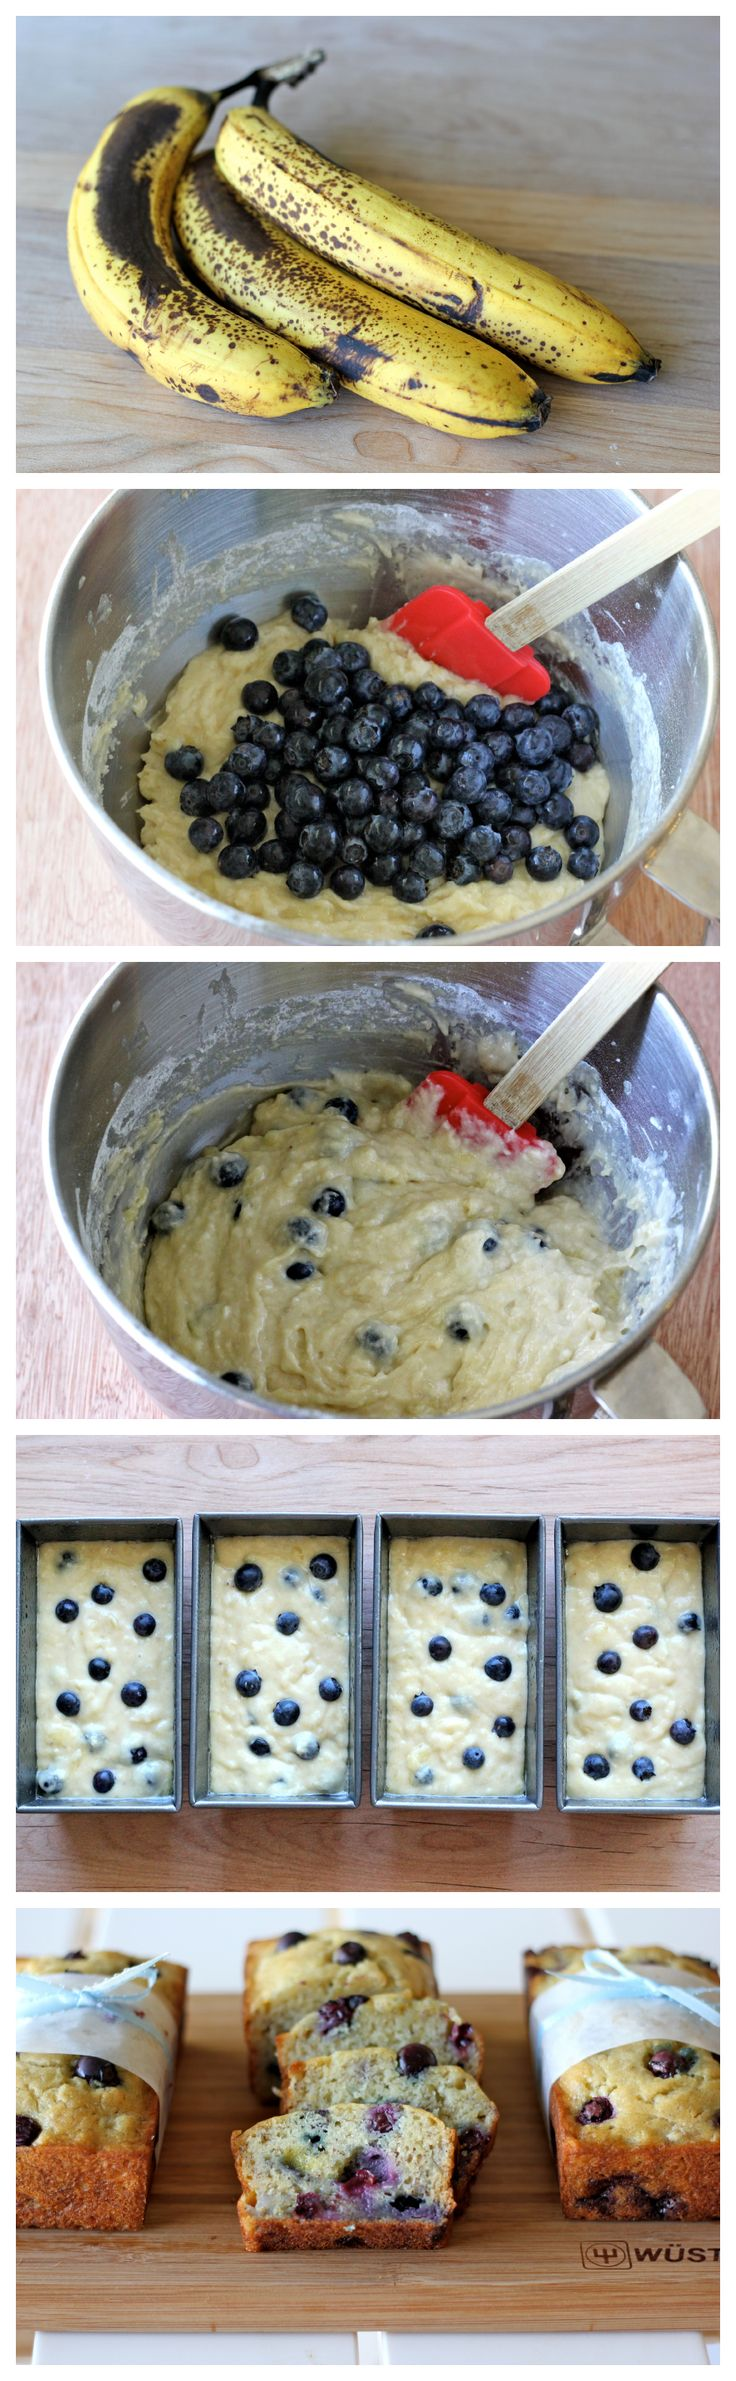 Buttermilk Banana Blueberry Bread - A great way to use up those lingering, spotty bananas, and the perfect holiday gift that everyone will love!